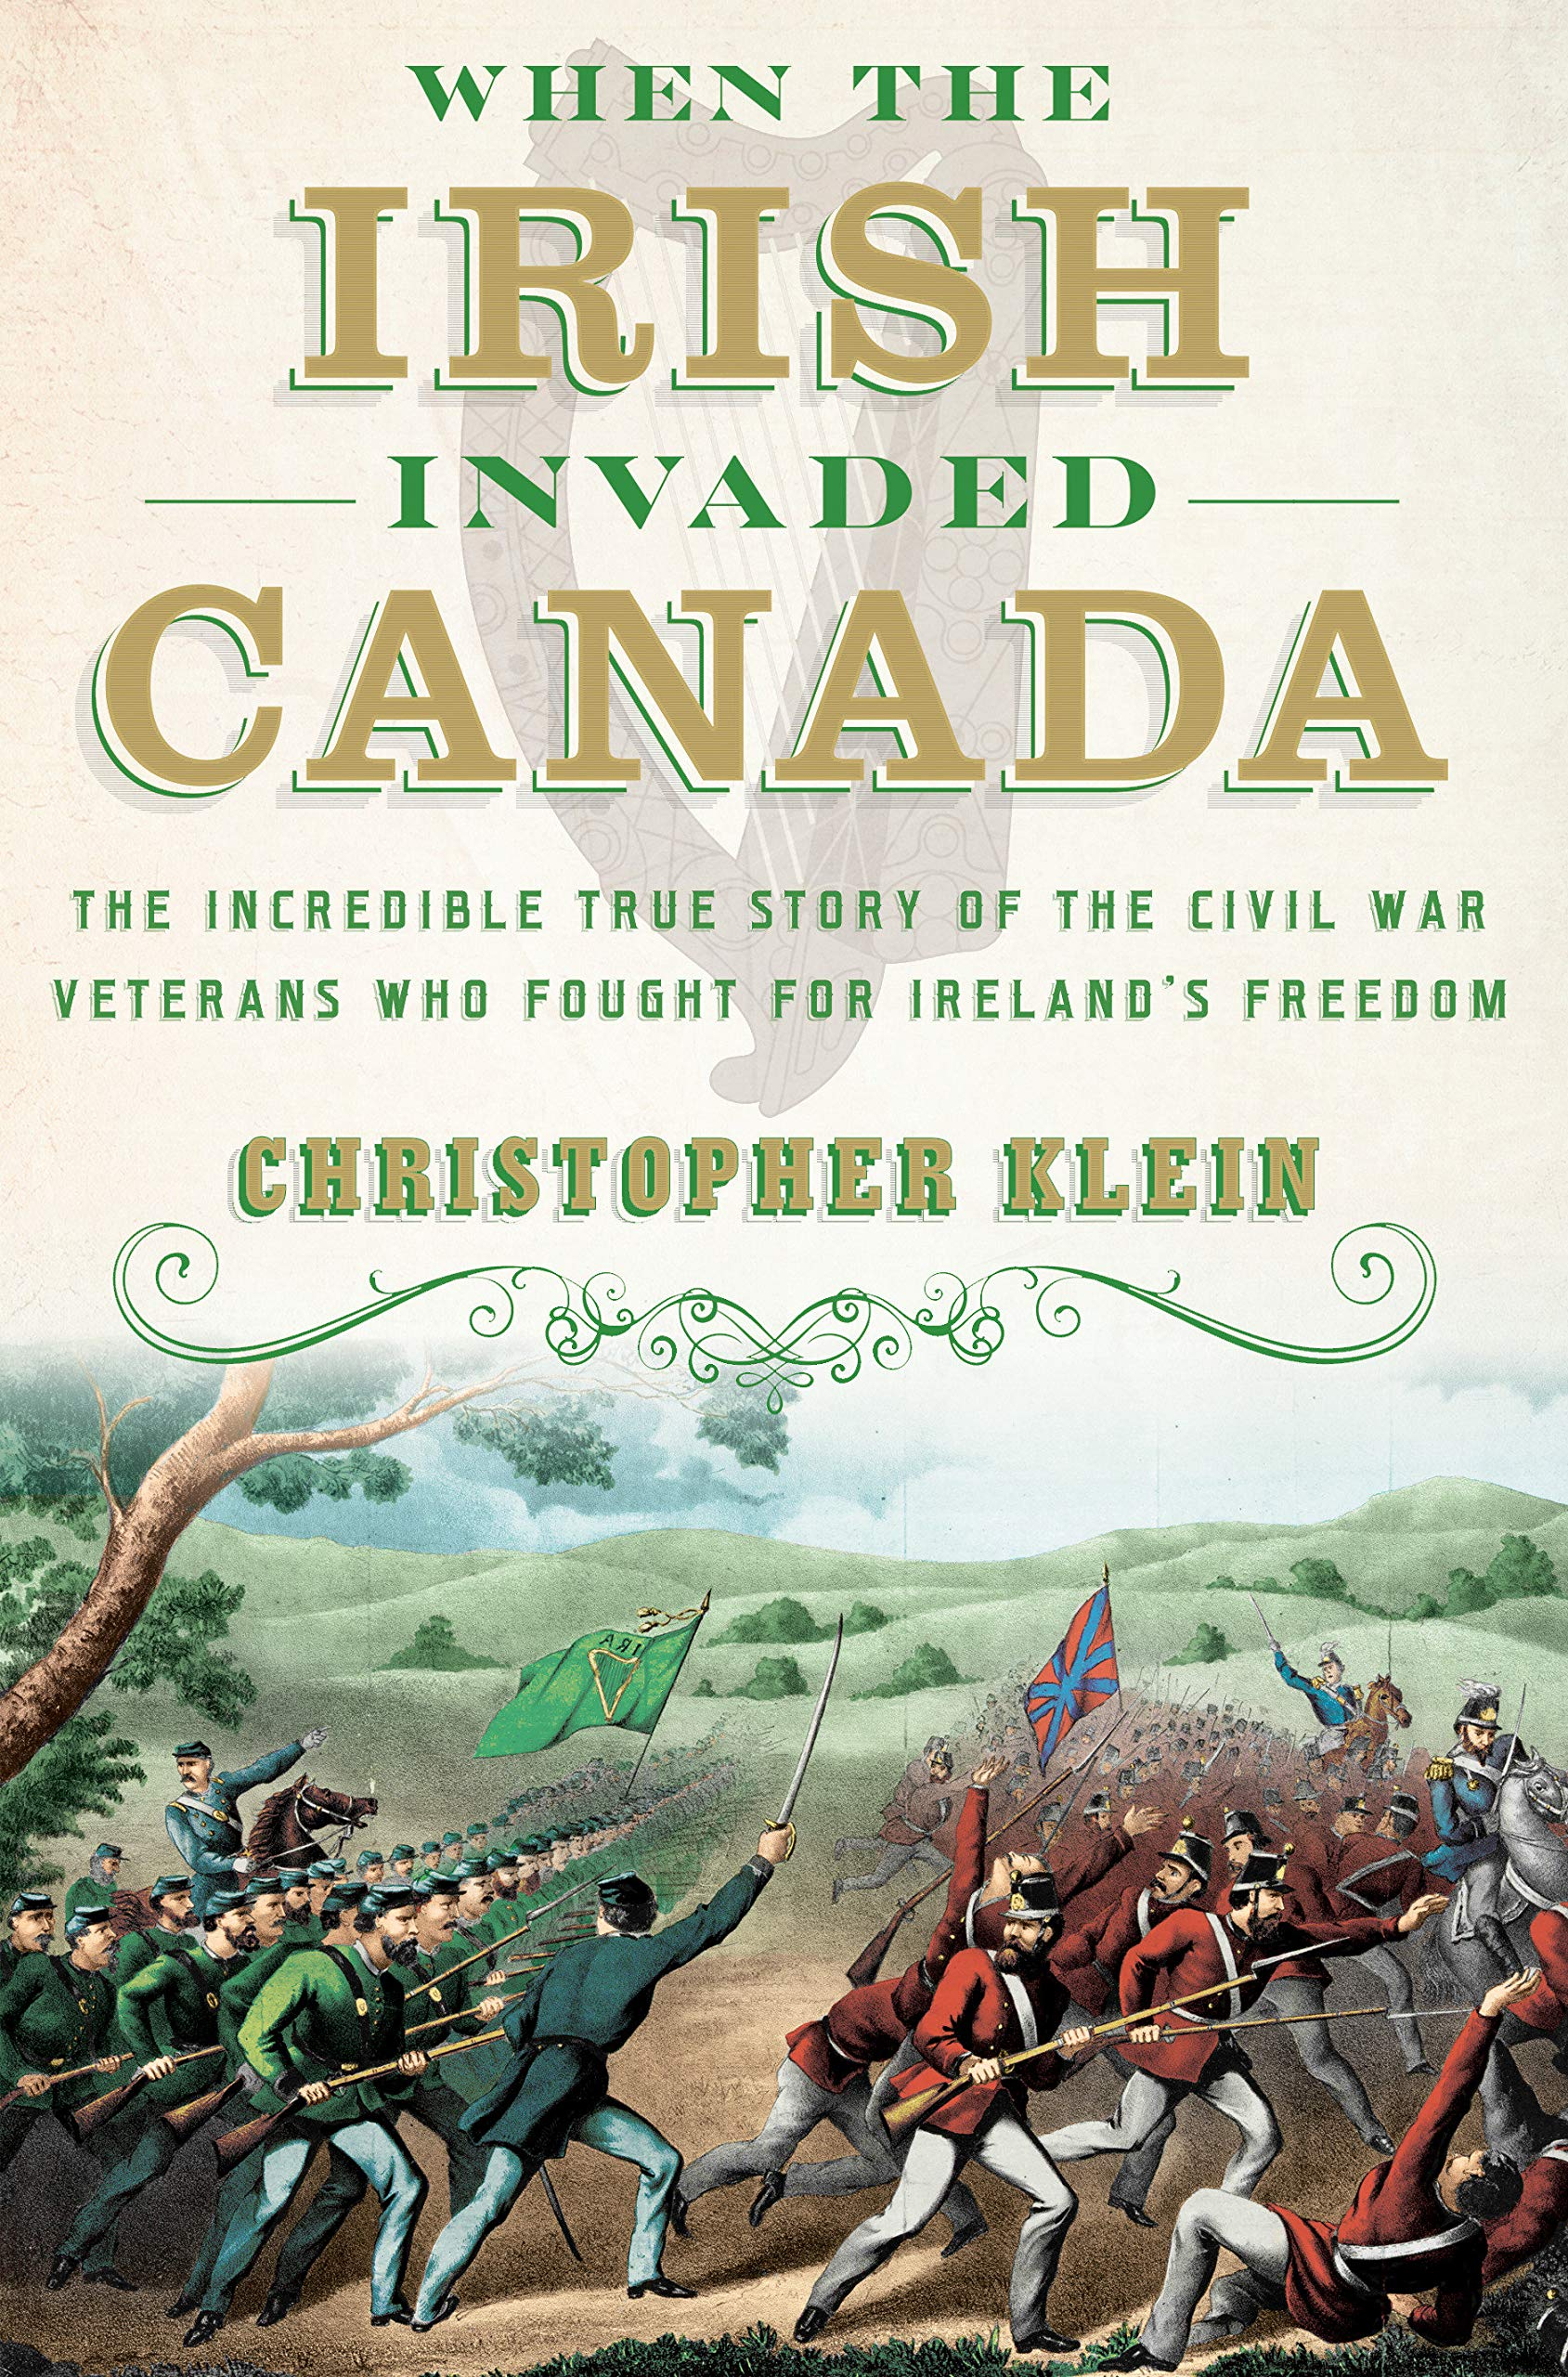 When the Irish Invaded Canada: The Incredible True Story of the